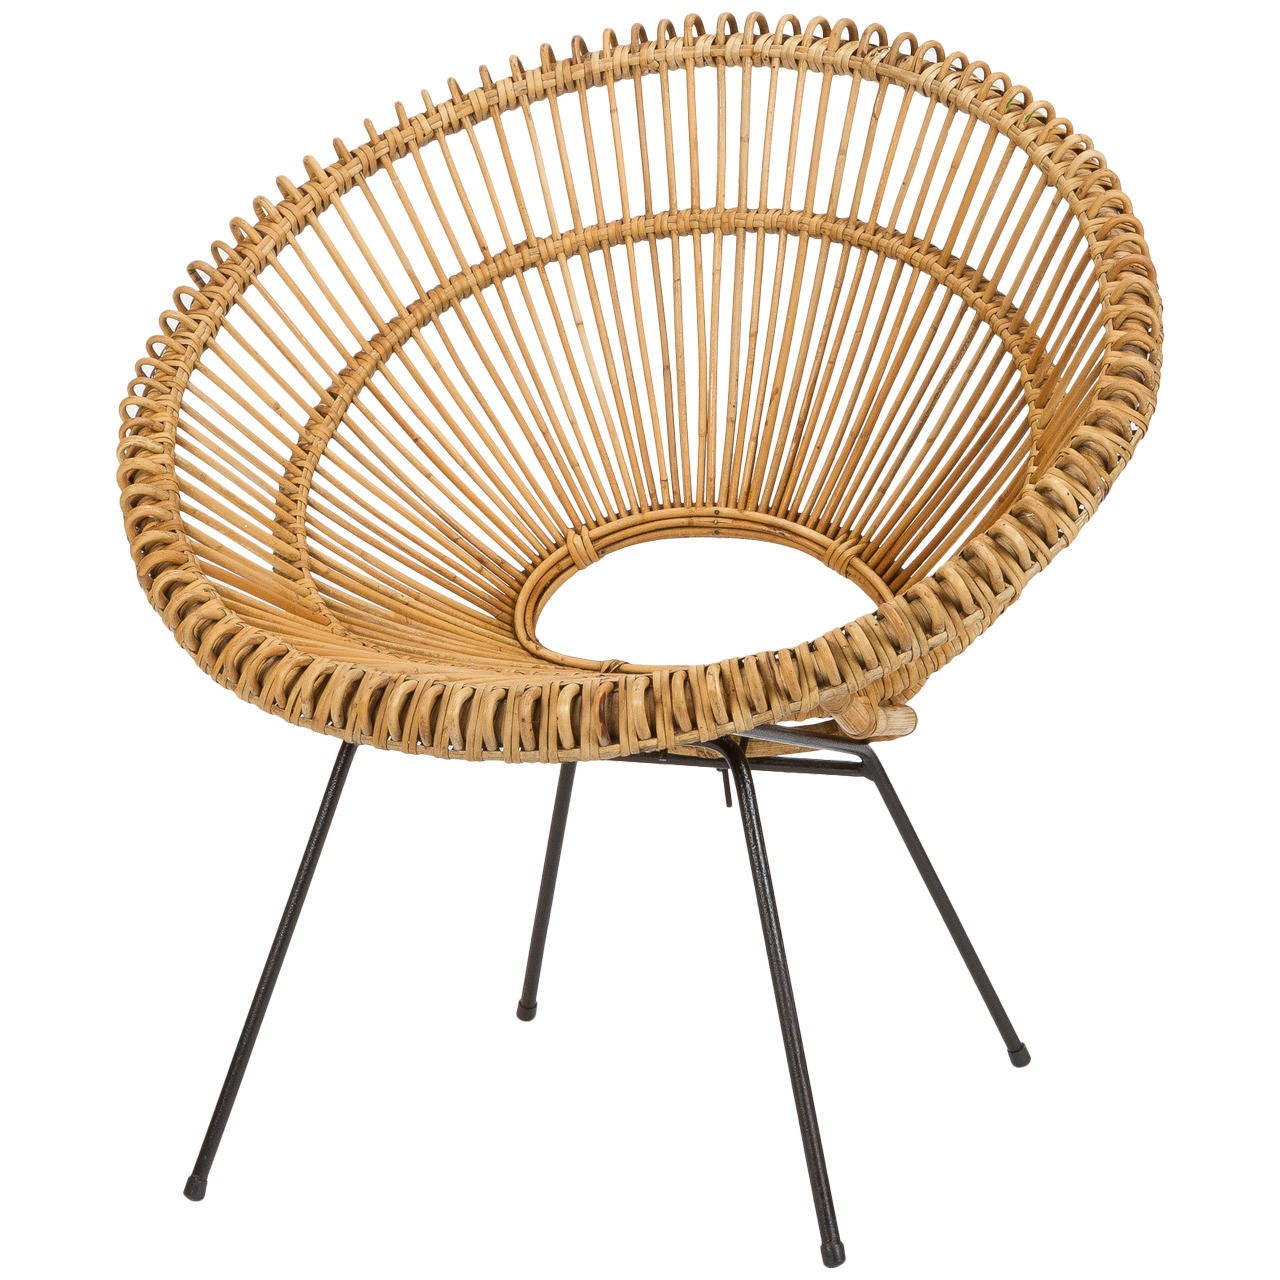 Round Wicker Chair - French wicker chair attributed to janine abraham dirk jan rol